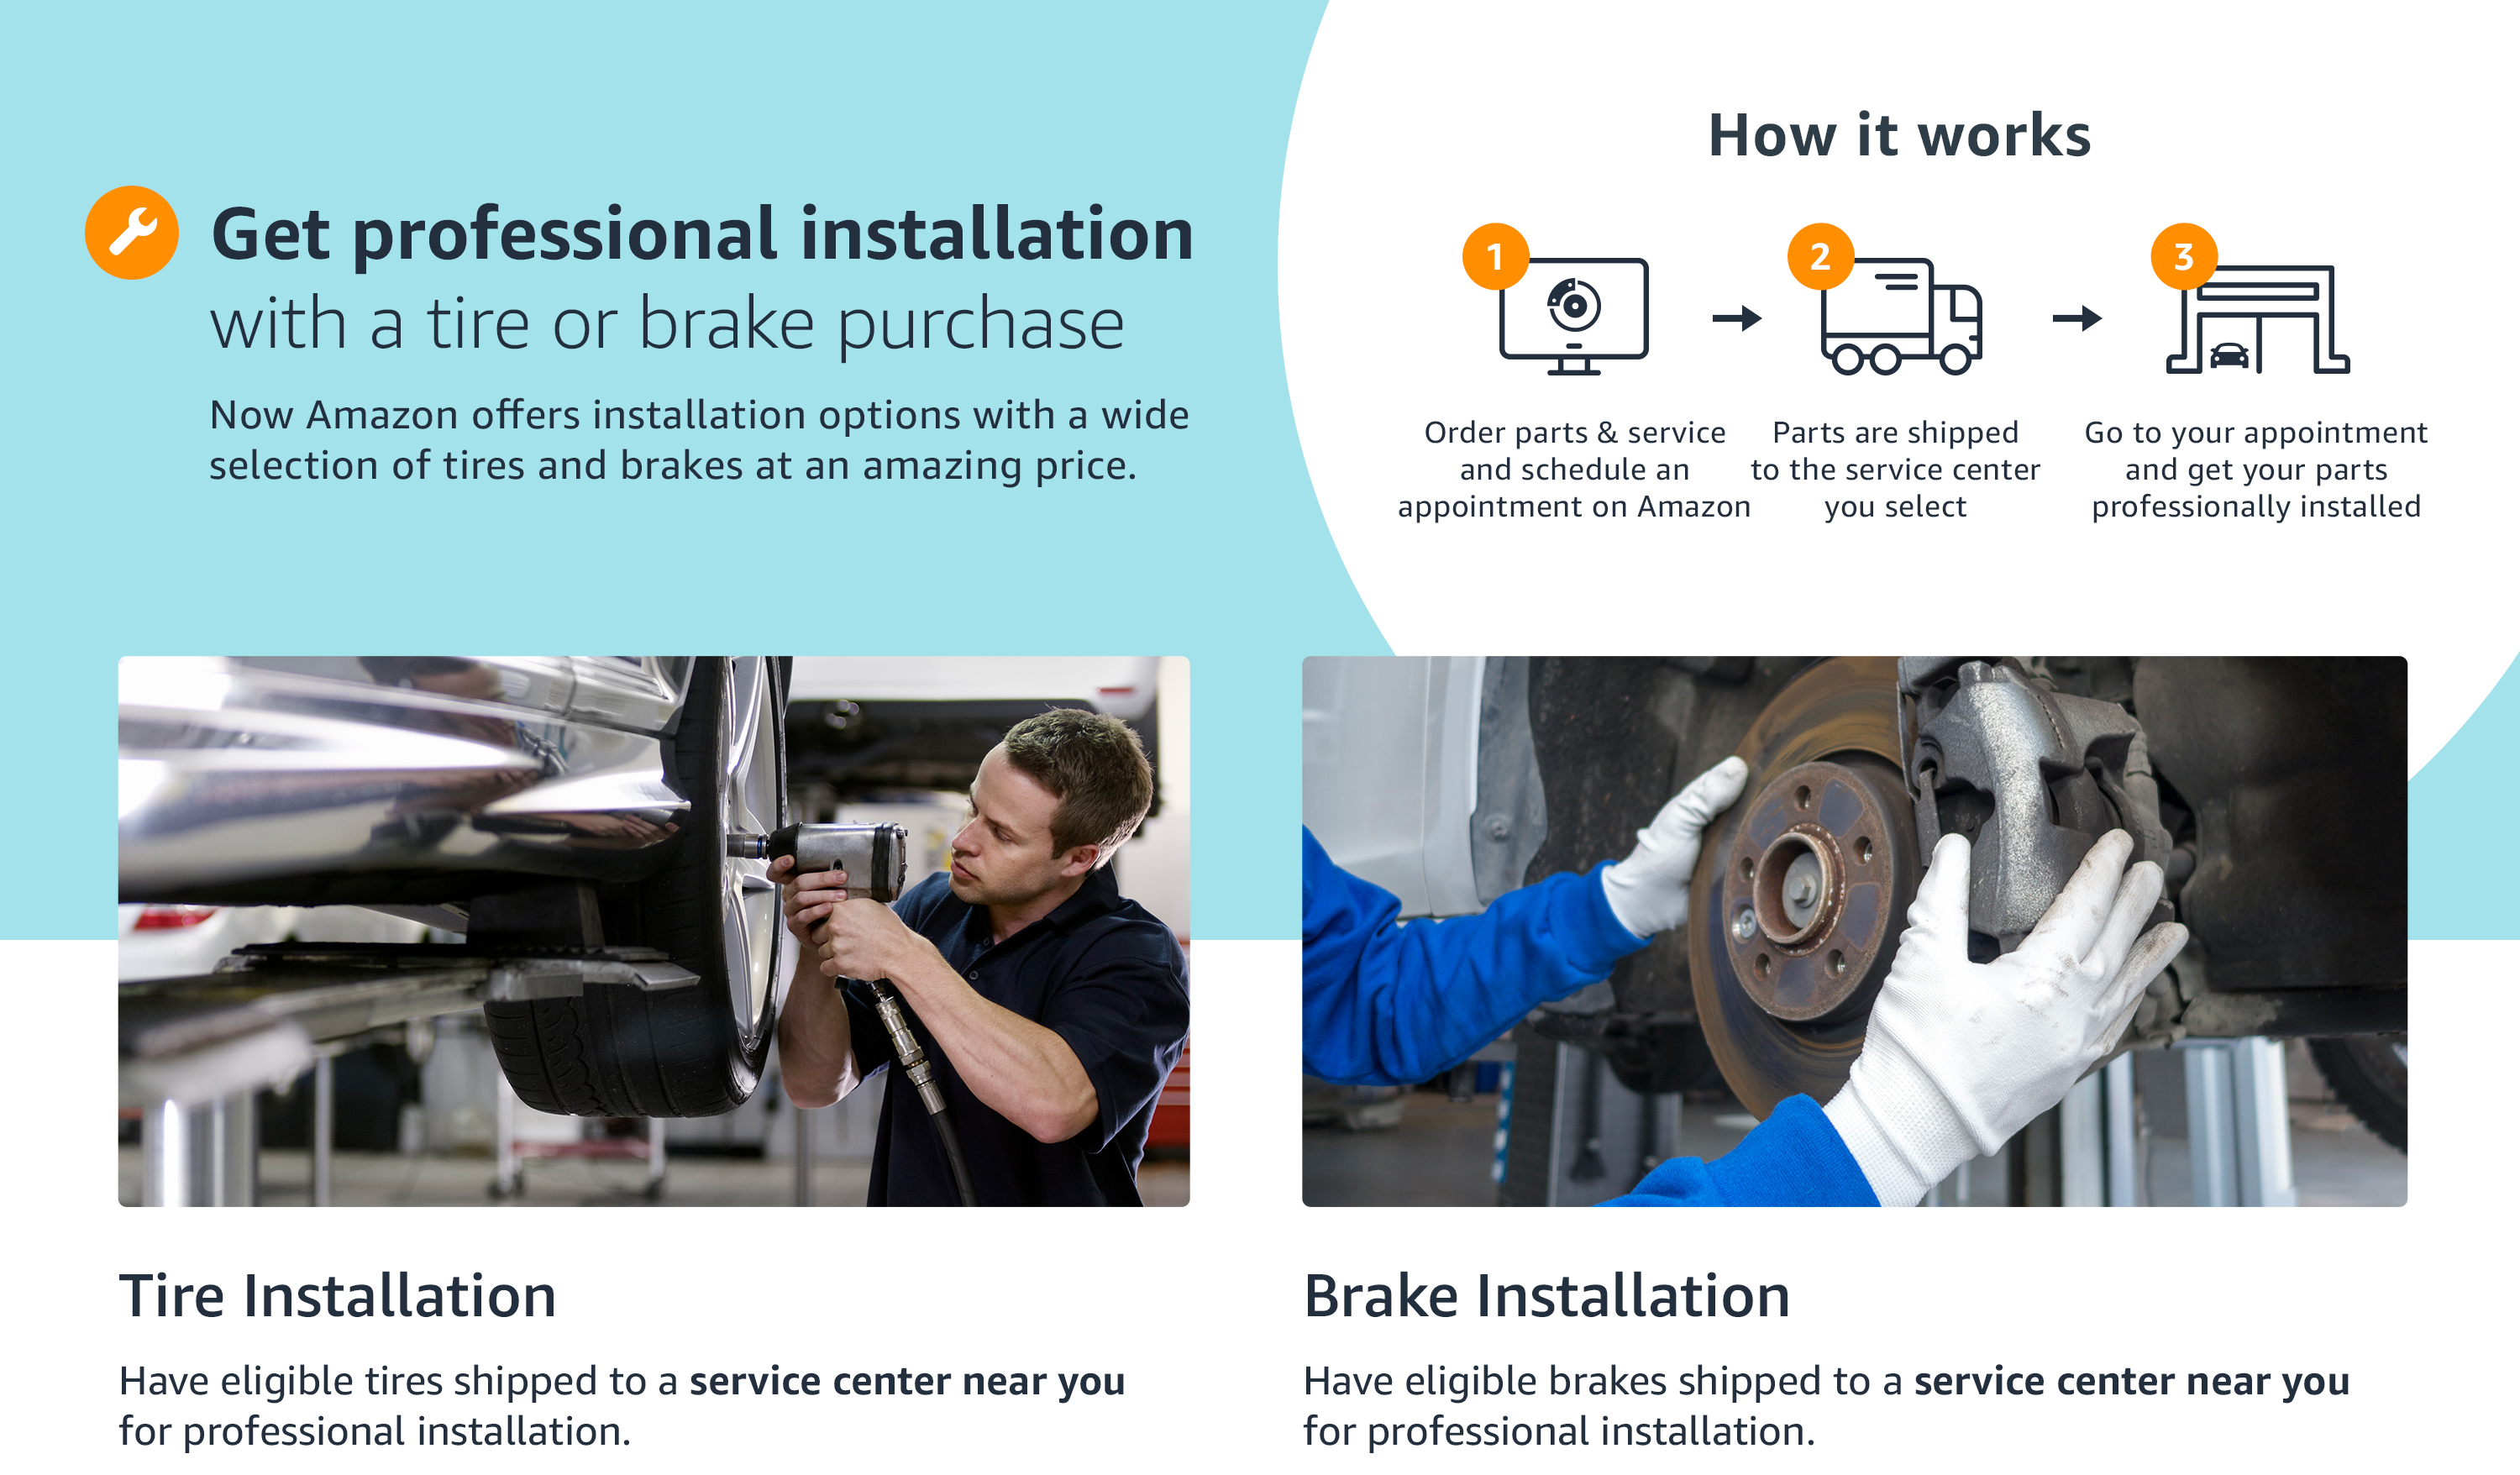 get professional installation with tire or brake purchase